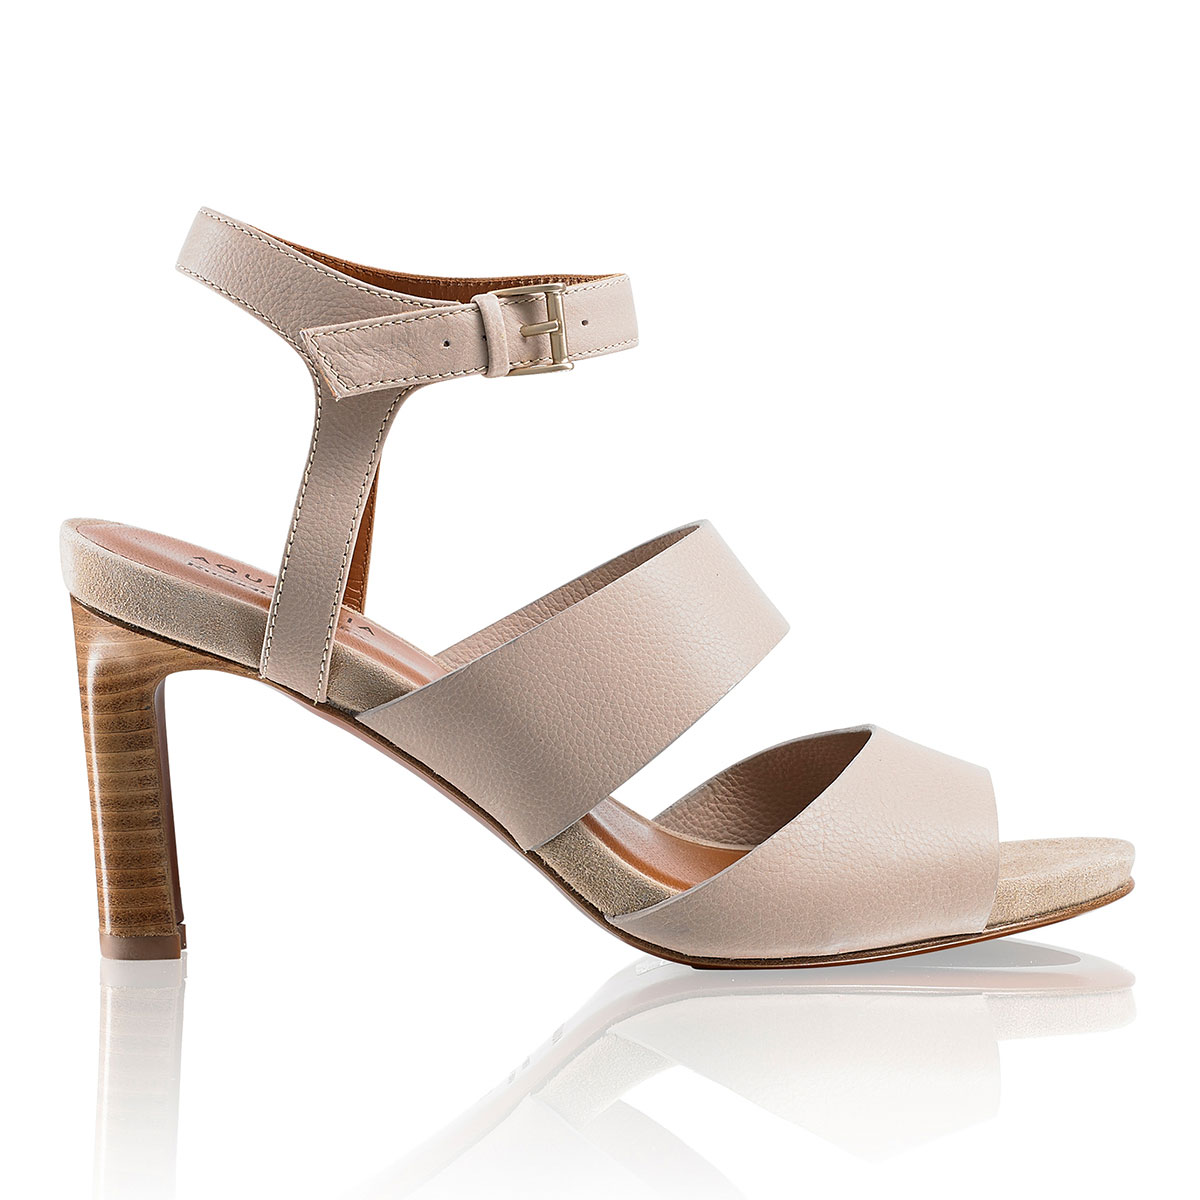 Russell And Bromley BASHA SOFT Strappy Sandal